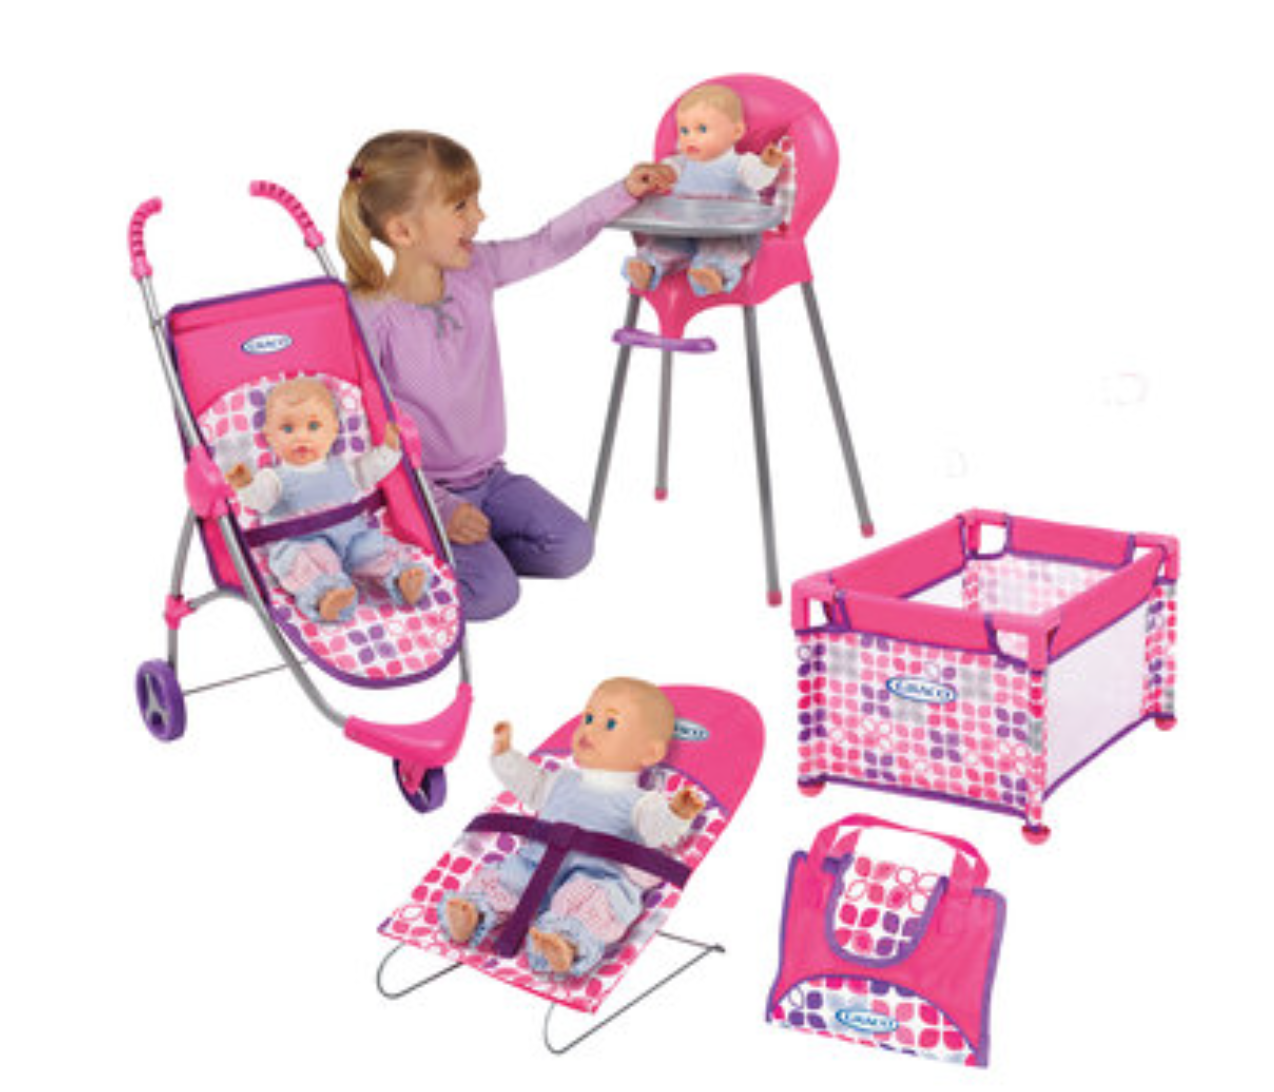 Birthday Ideas For A 3 Year Old Girl The Witt Family